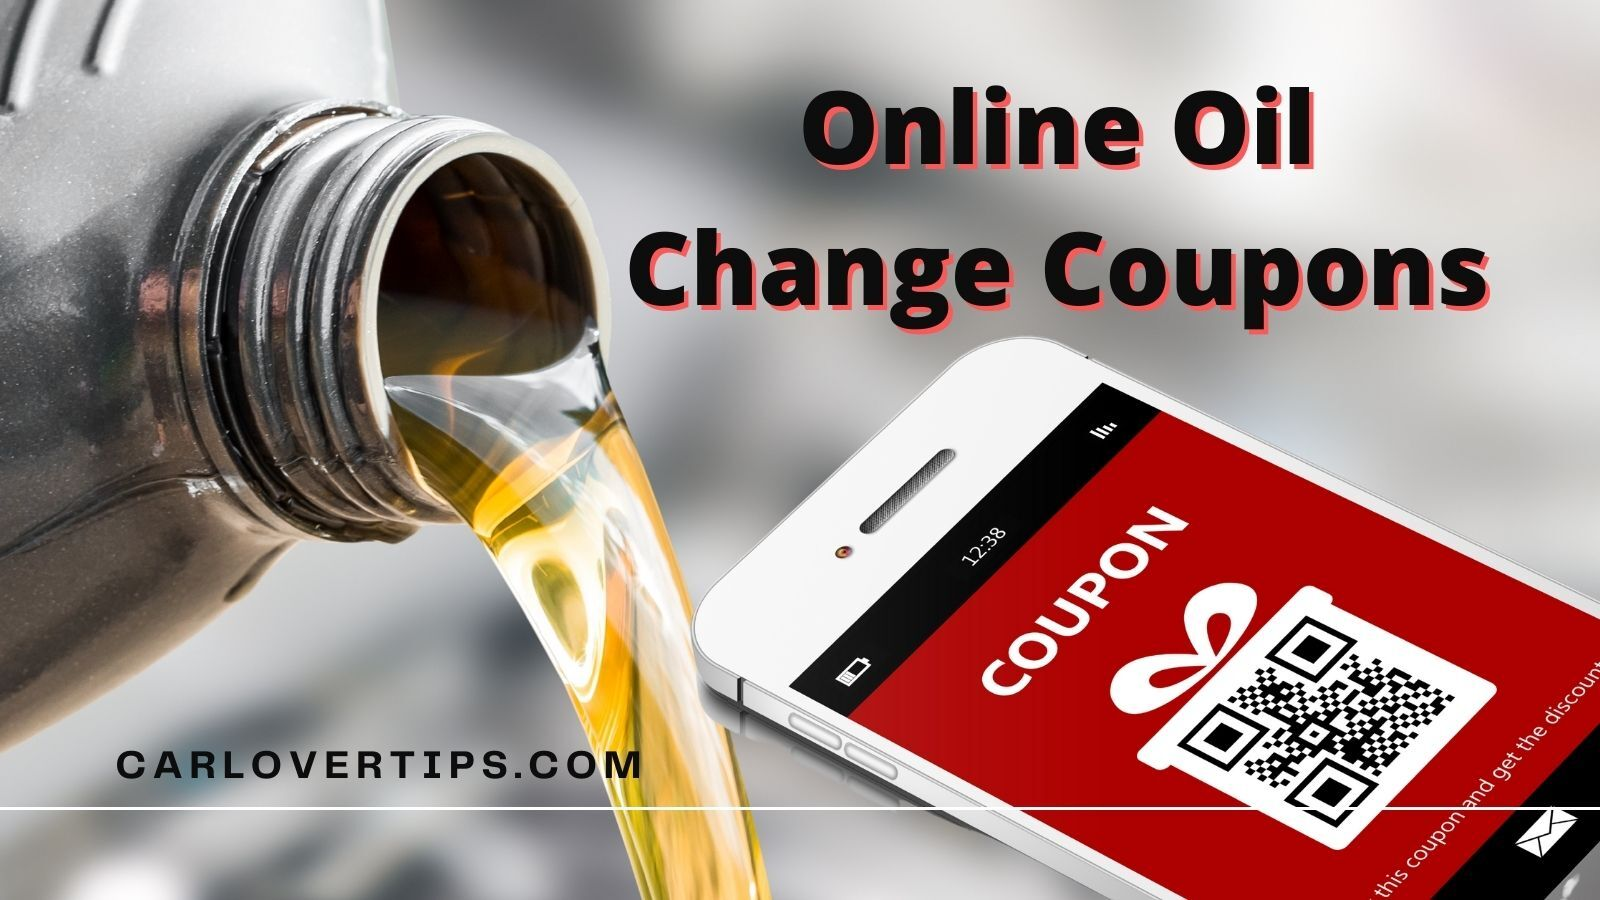 Online Oil Change Coupons